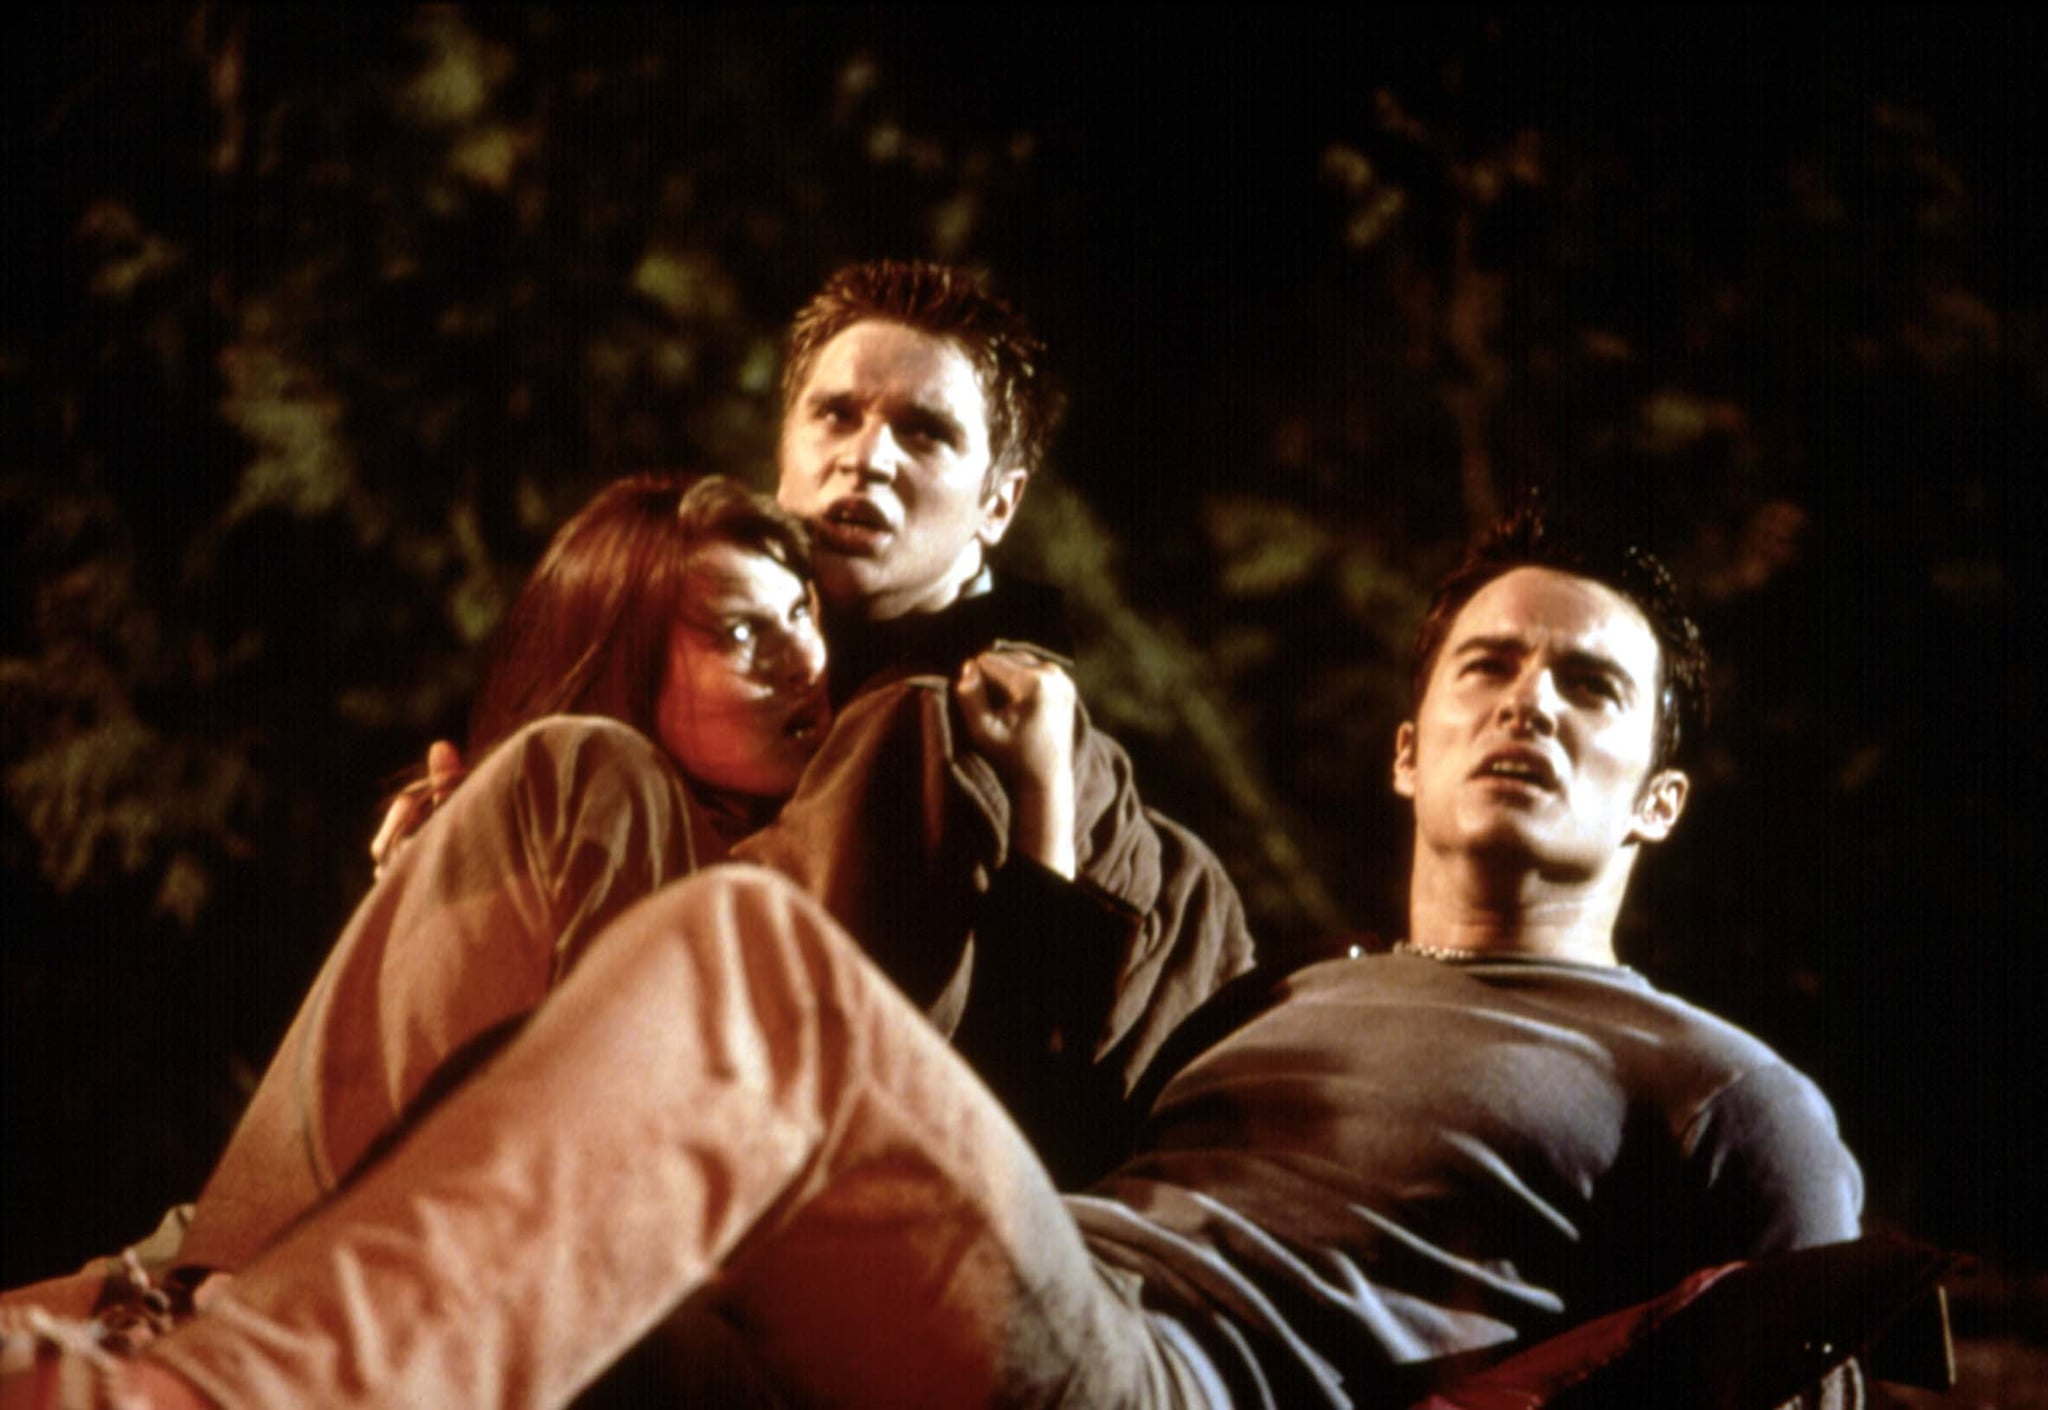 FINAL DESTINATION, Ali Larter, Devon Sawa, Kerr Smith, 2000, huddled in fear